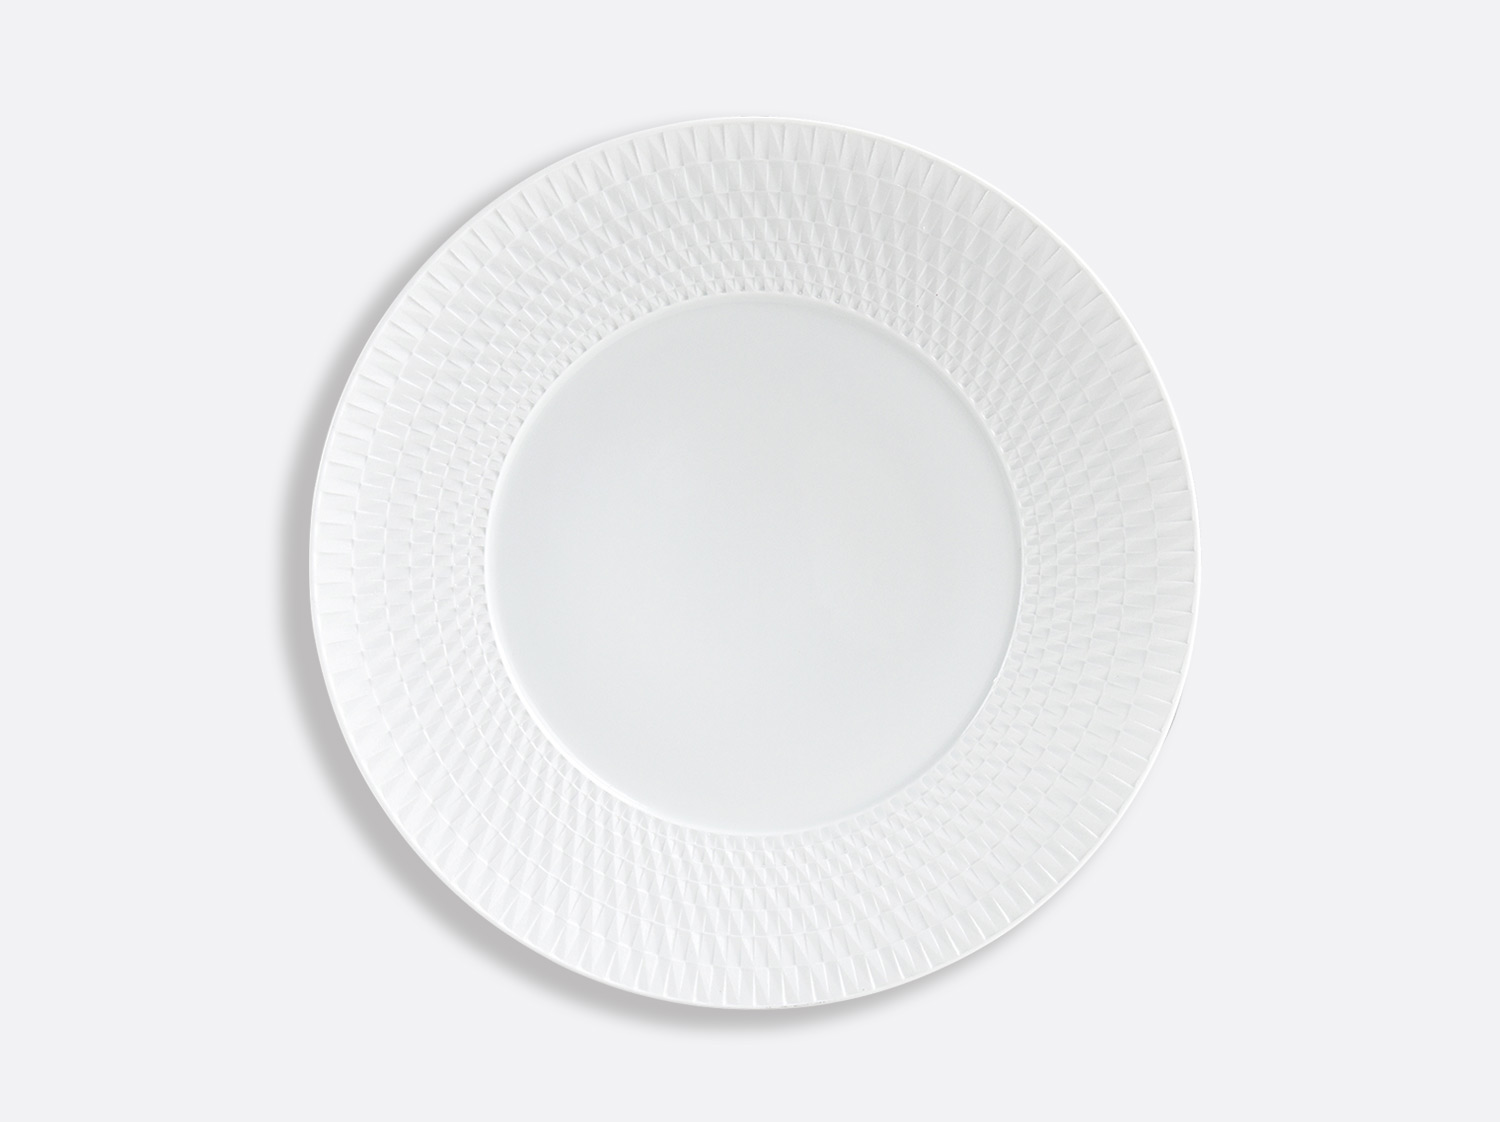 Assiette à dîner 26 cm en porcelaine de la collection Twist Bernardaud